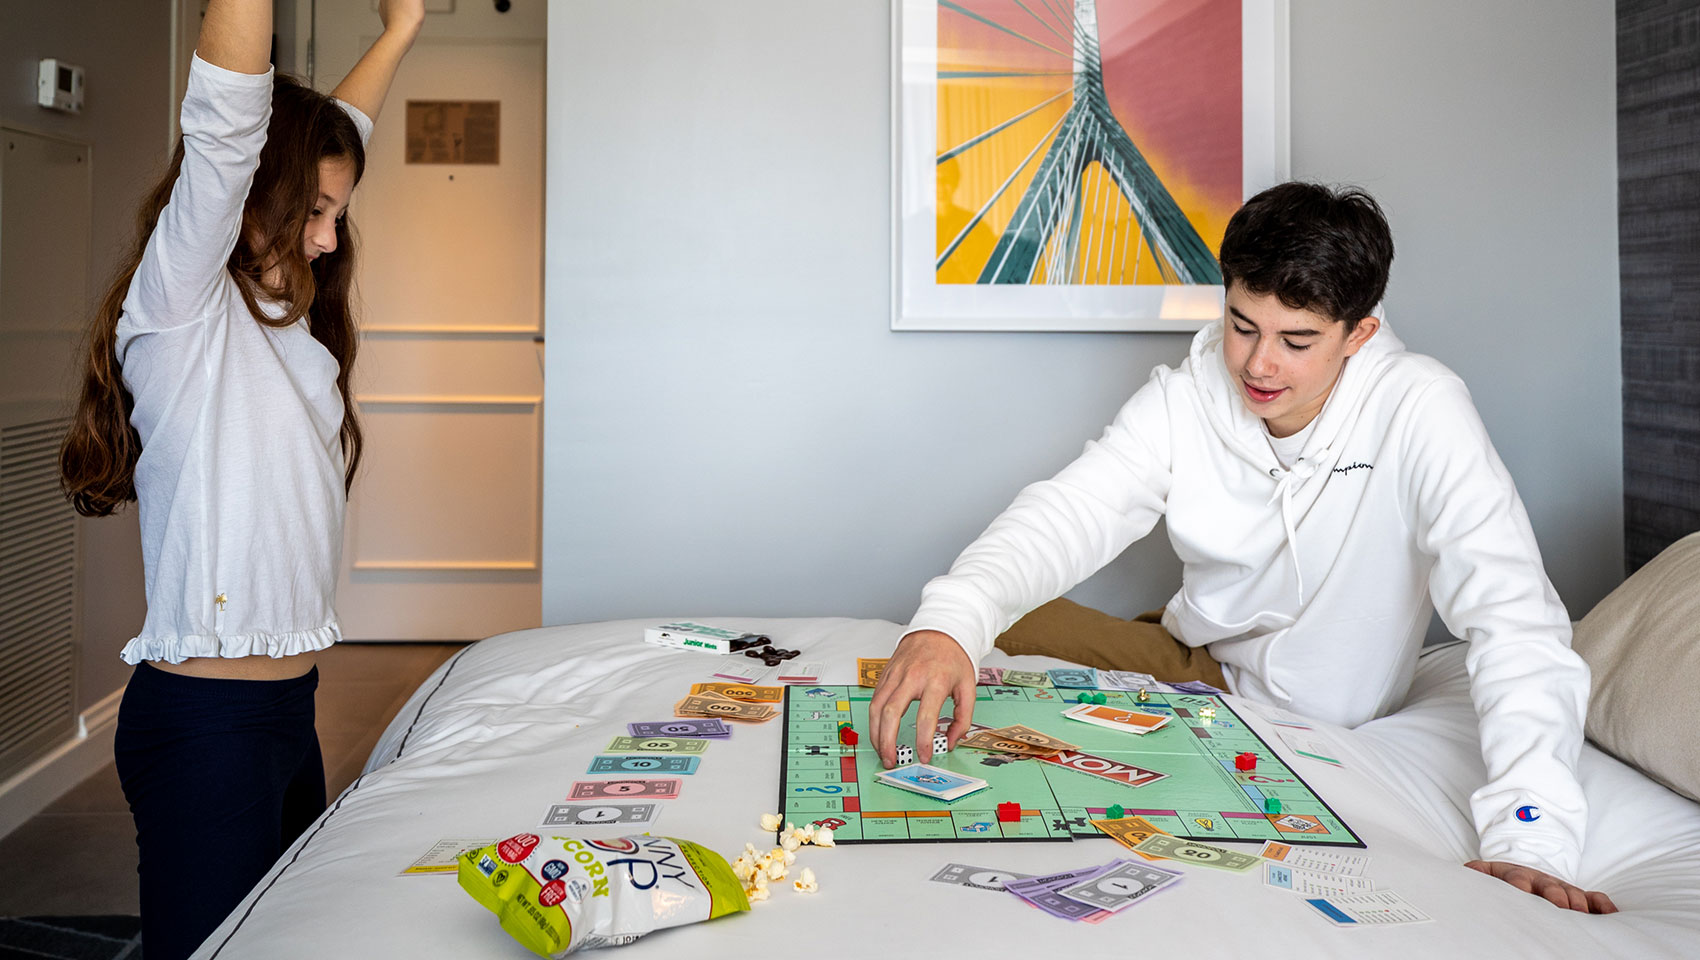 kids playing Monopoly on a guest room bed